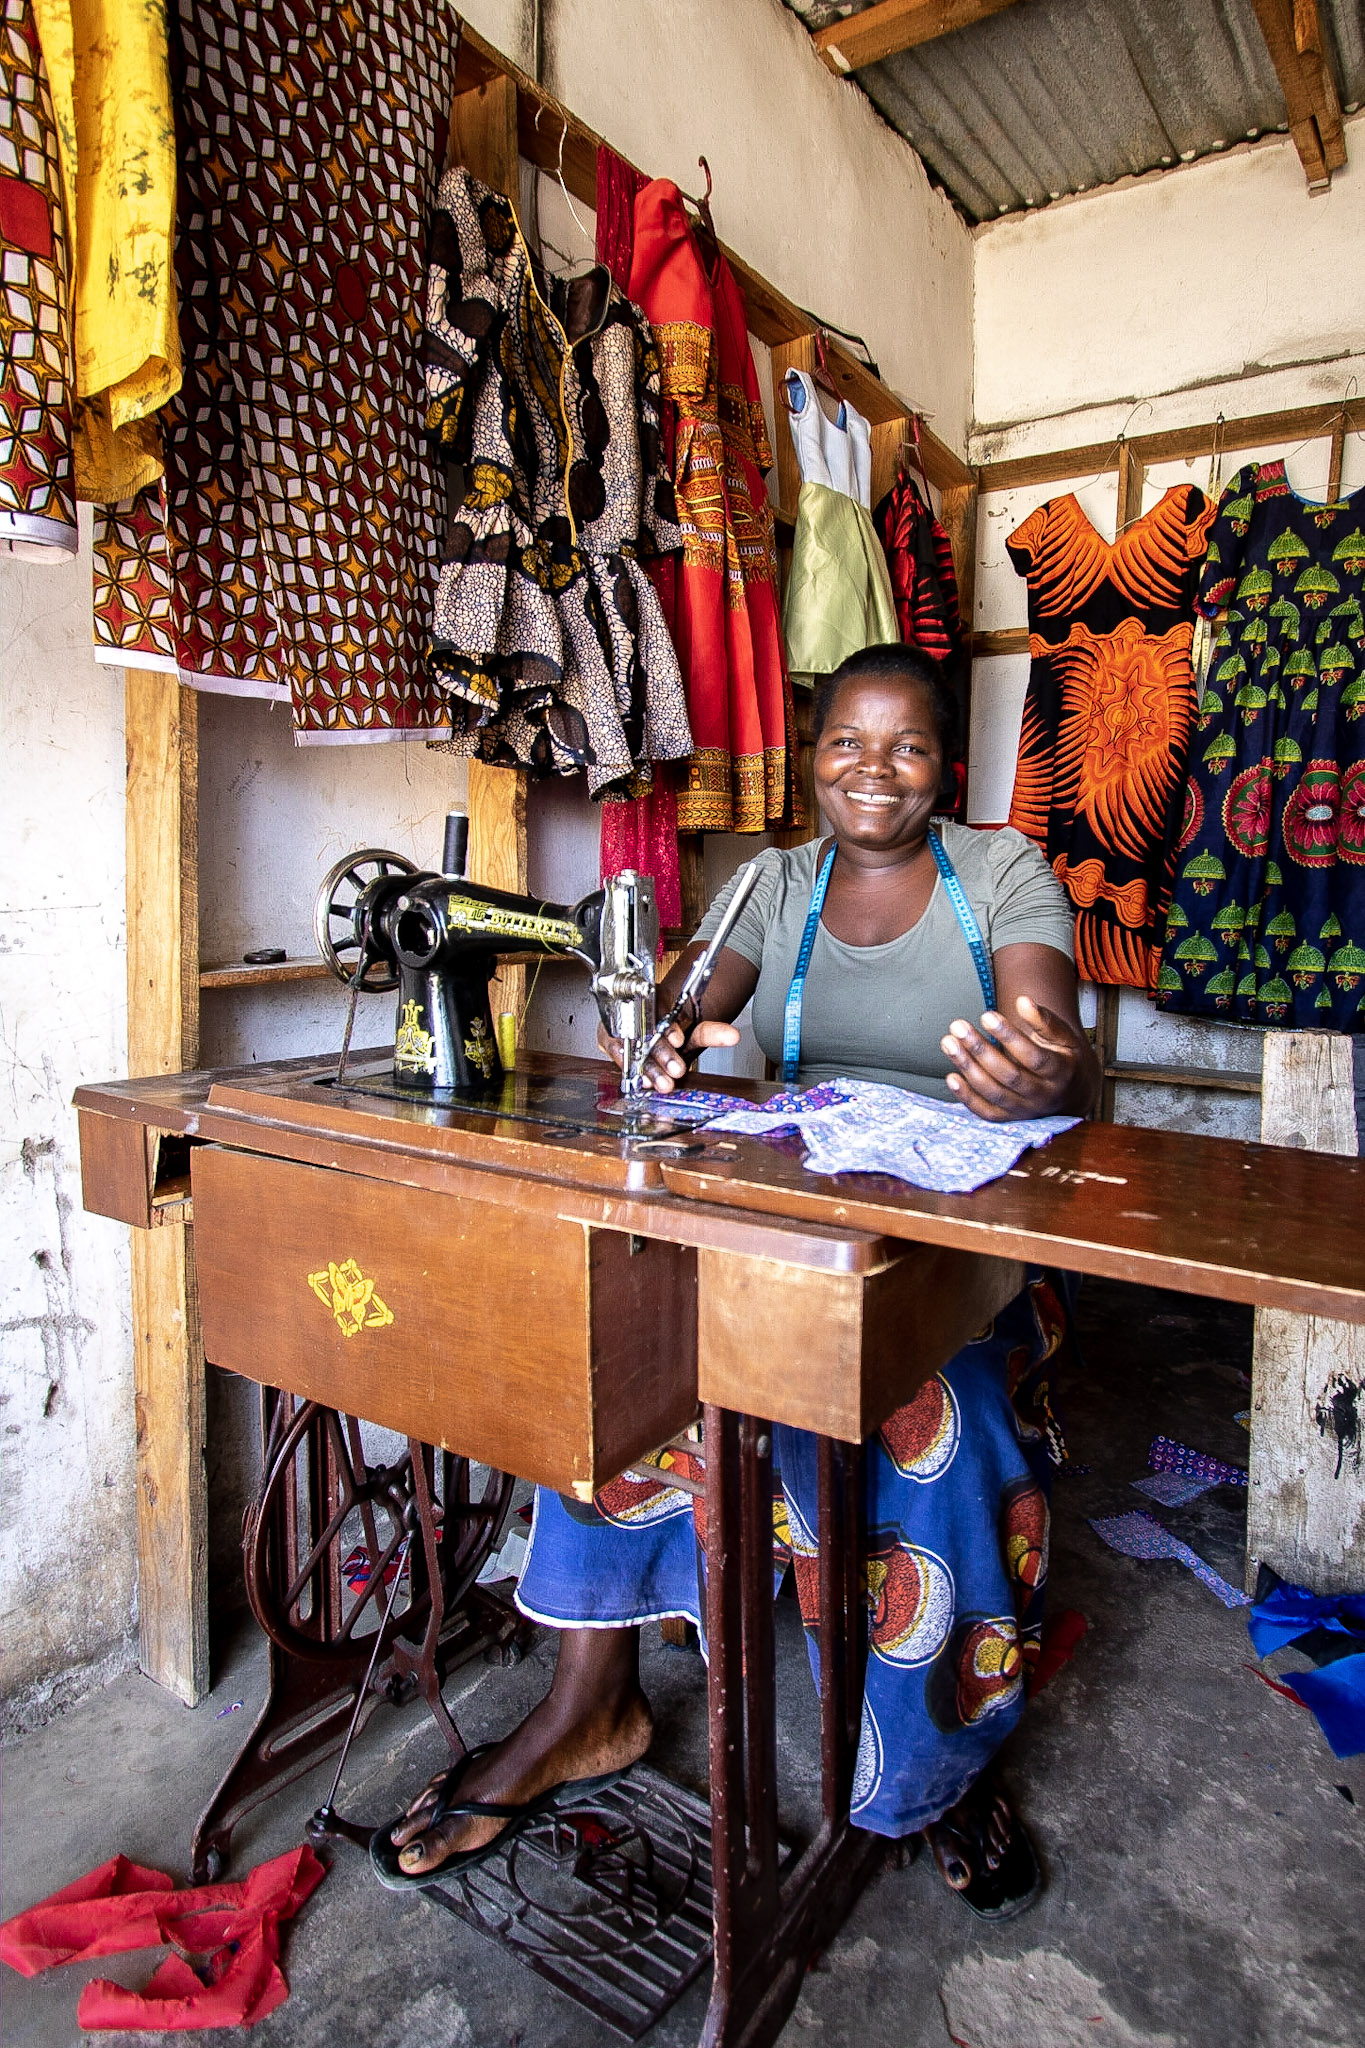 Sewing to Support a Family, Tanzania